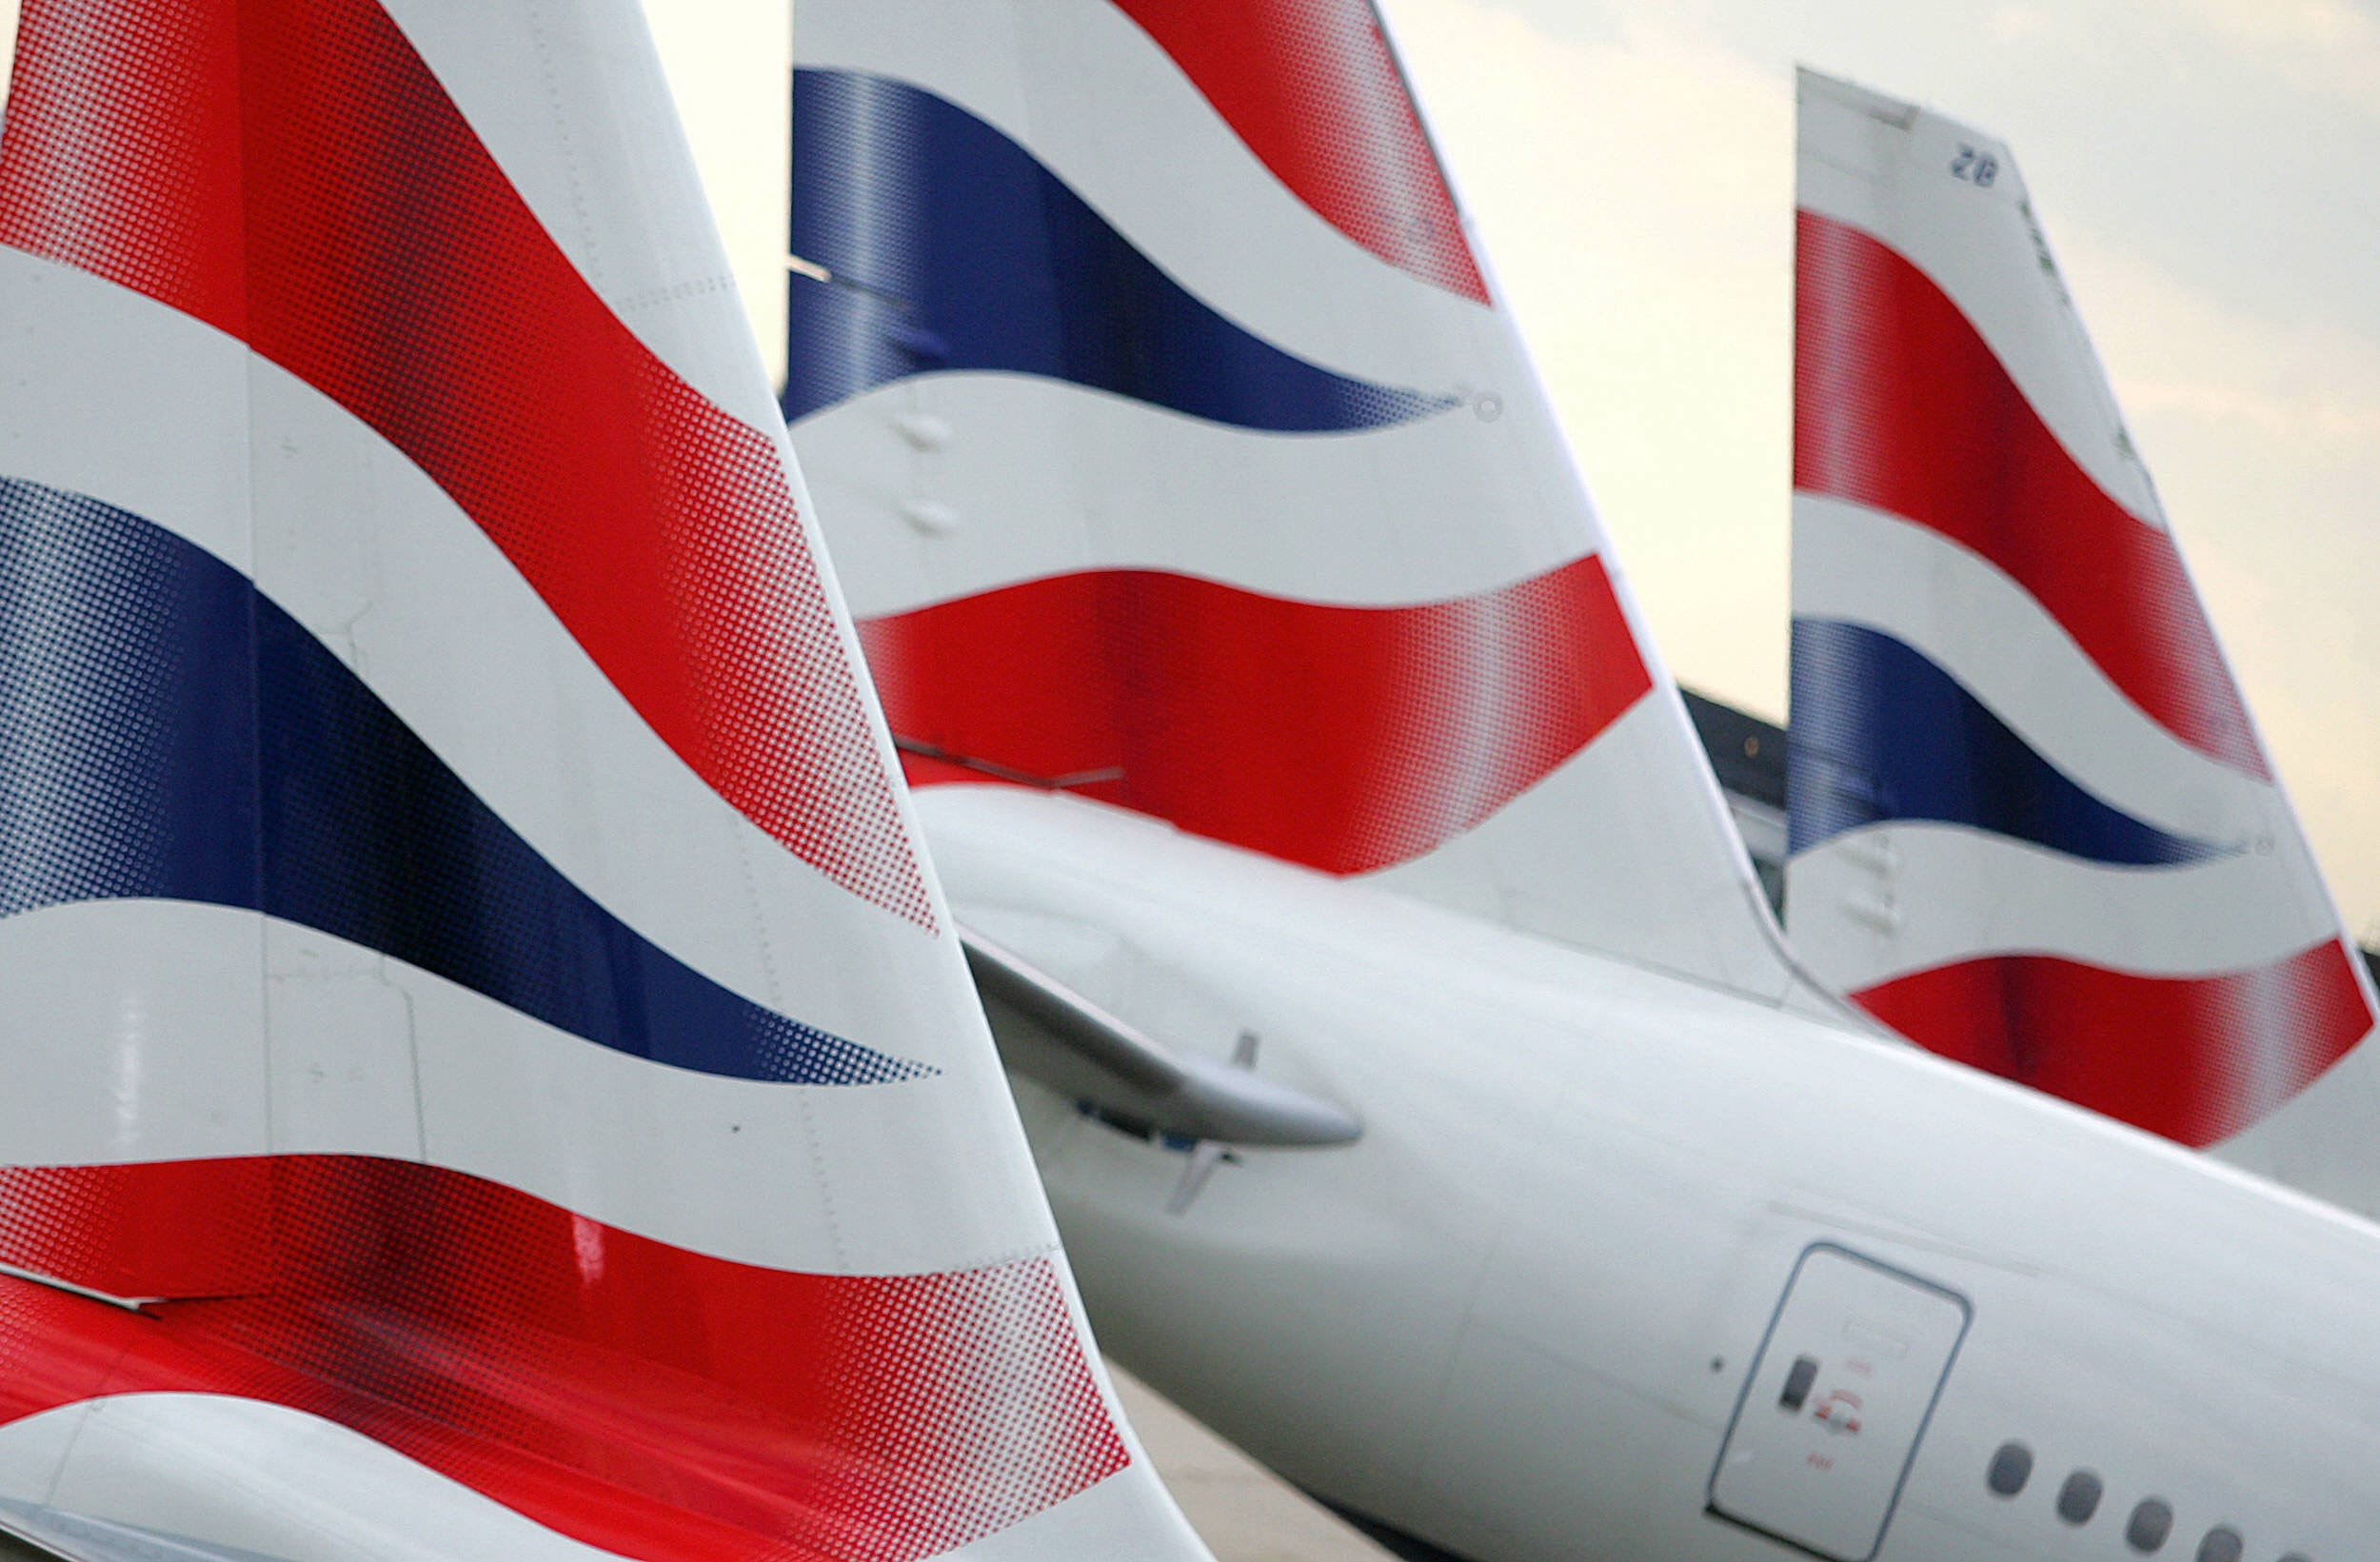 Truth or Not? 'Total chaos': British Airways says IT glitch now fixed